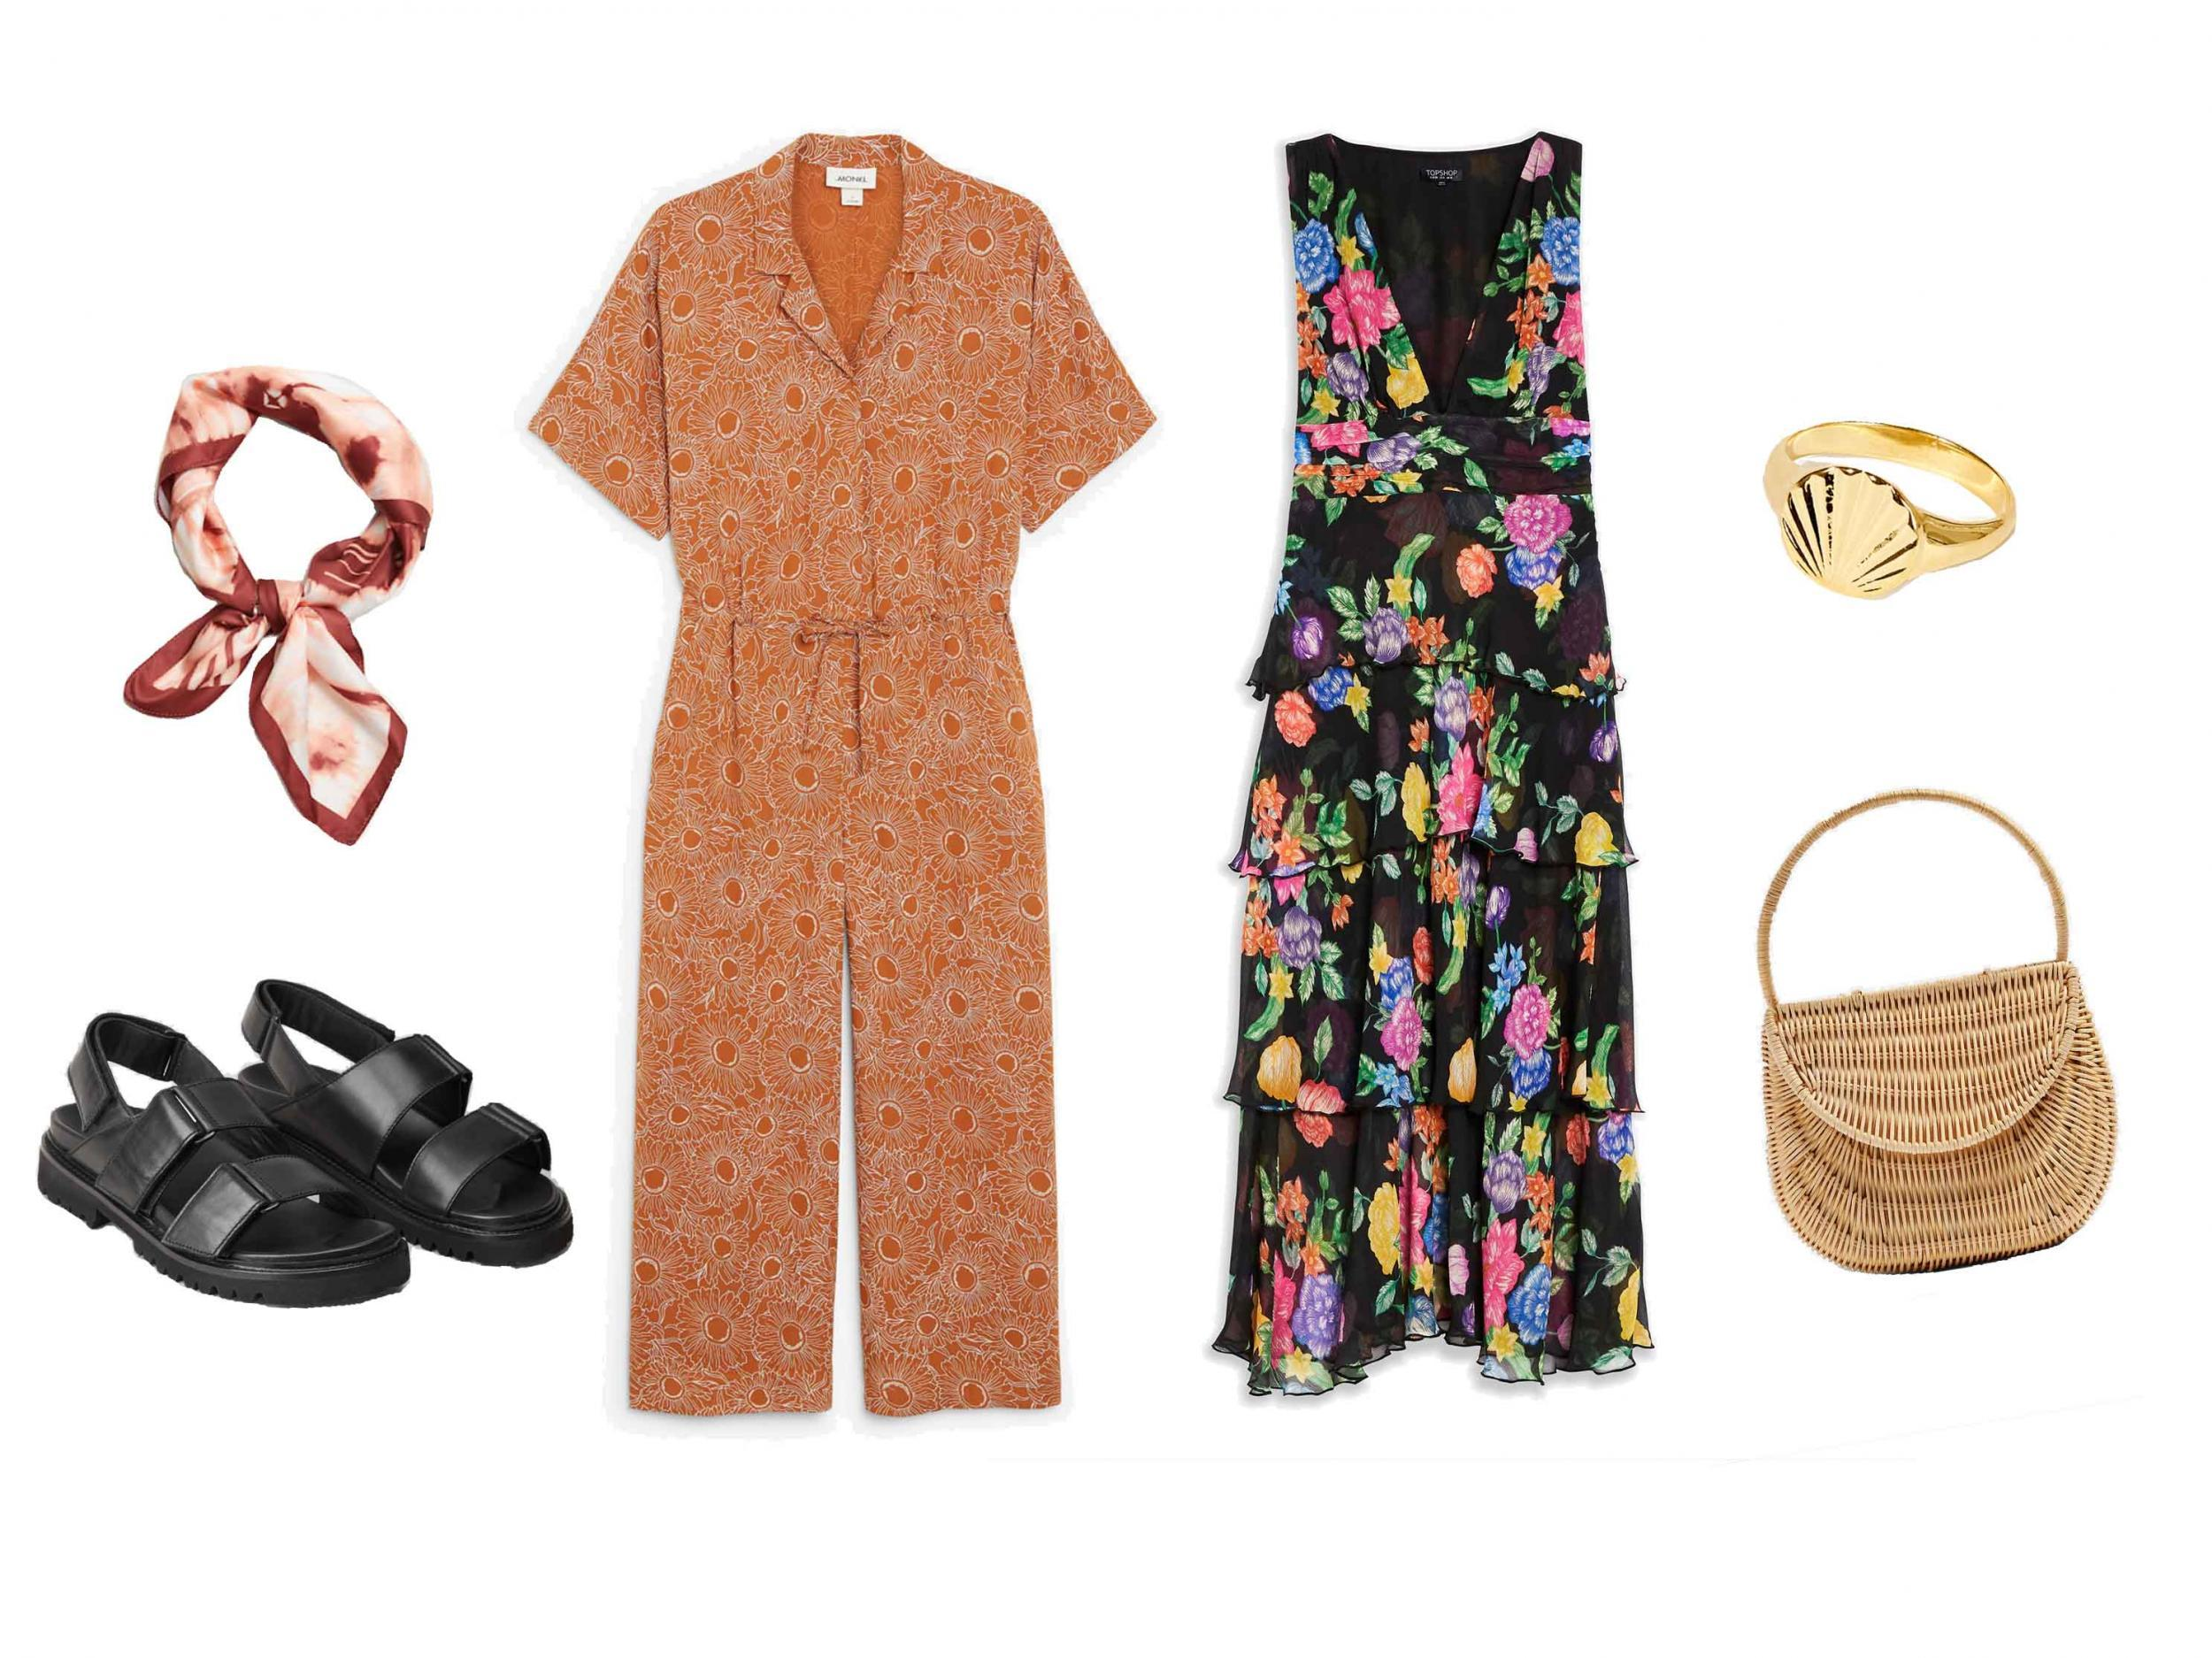 Summer fashion: Best high street buys in May to get your wardrobe ready for the holidays